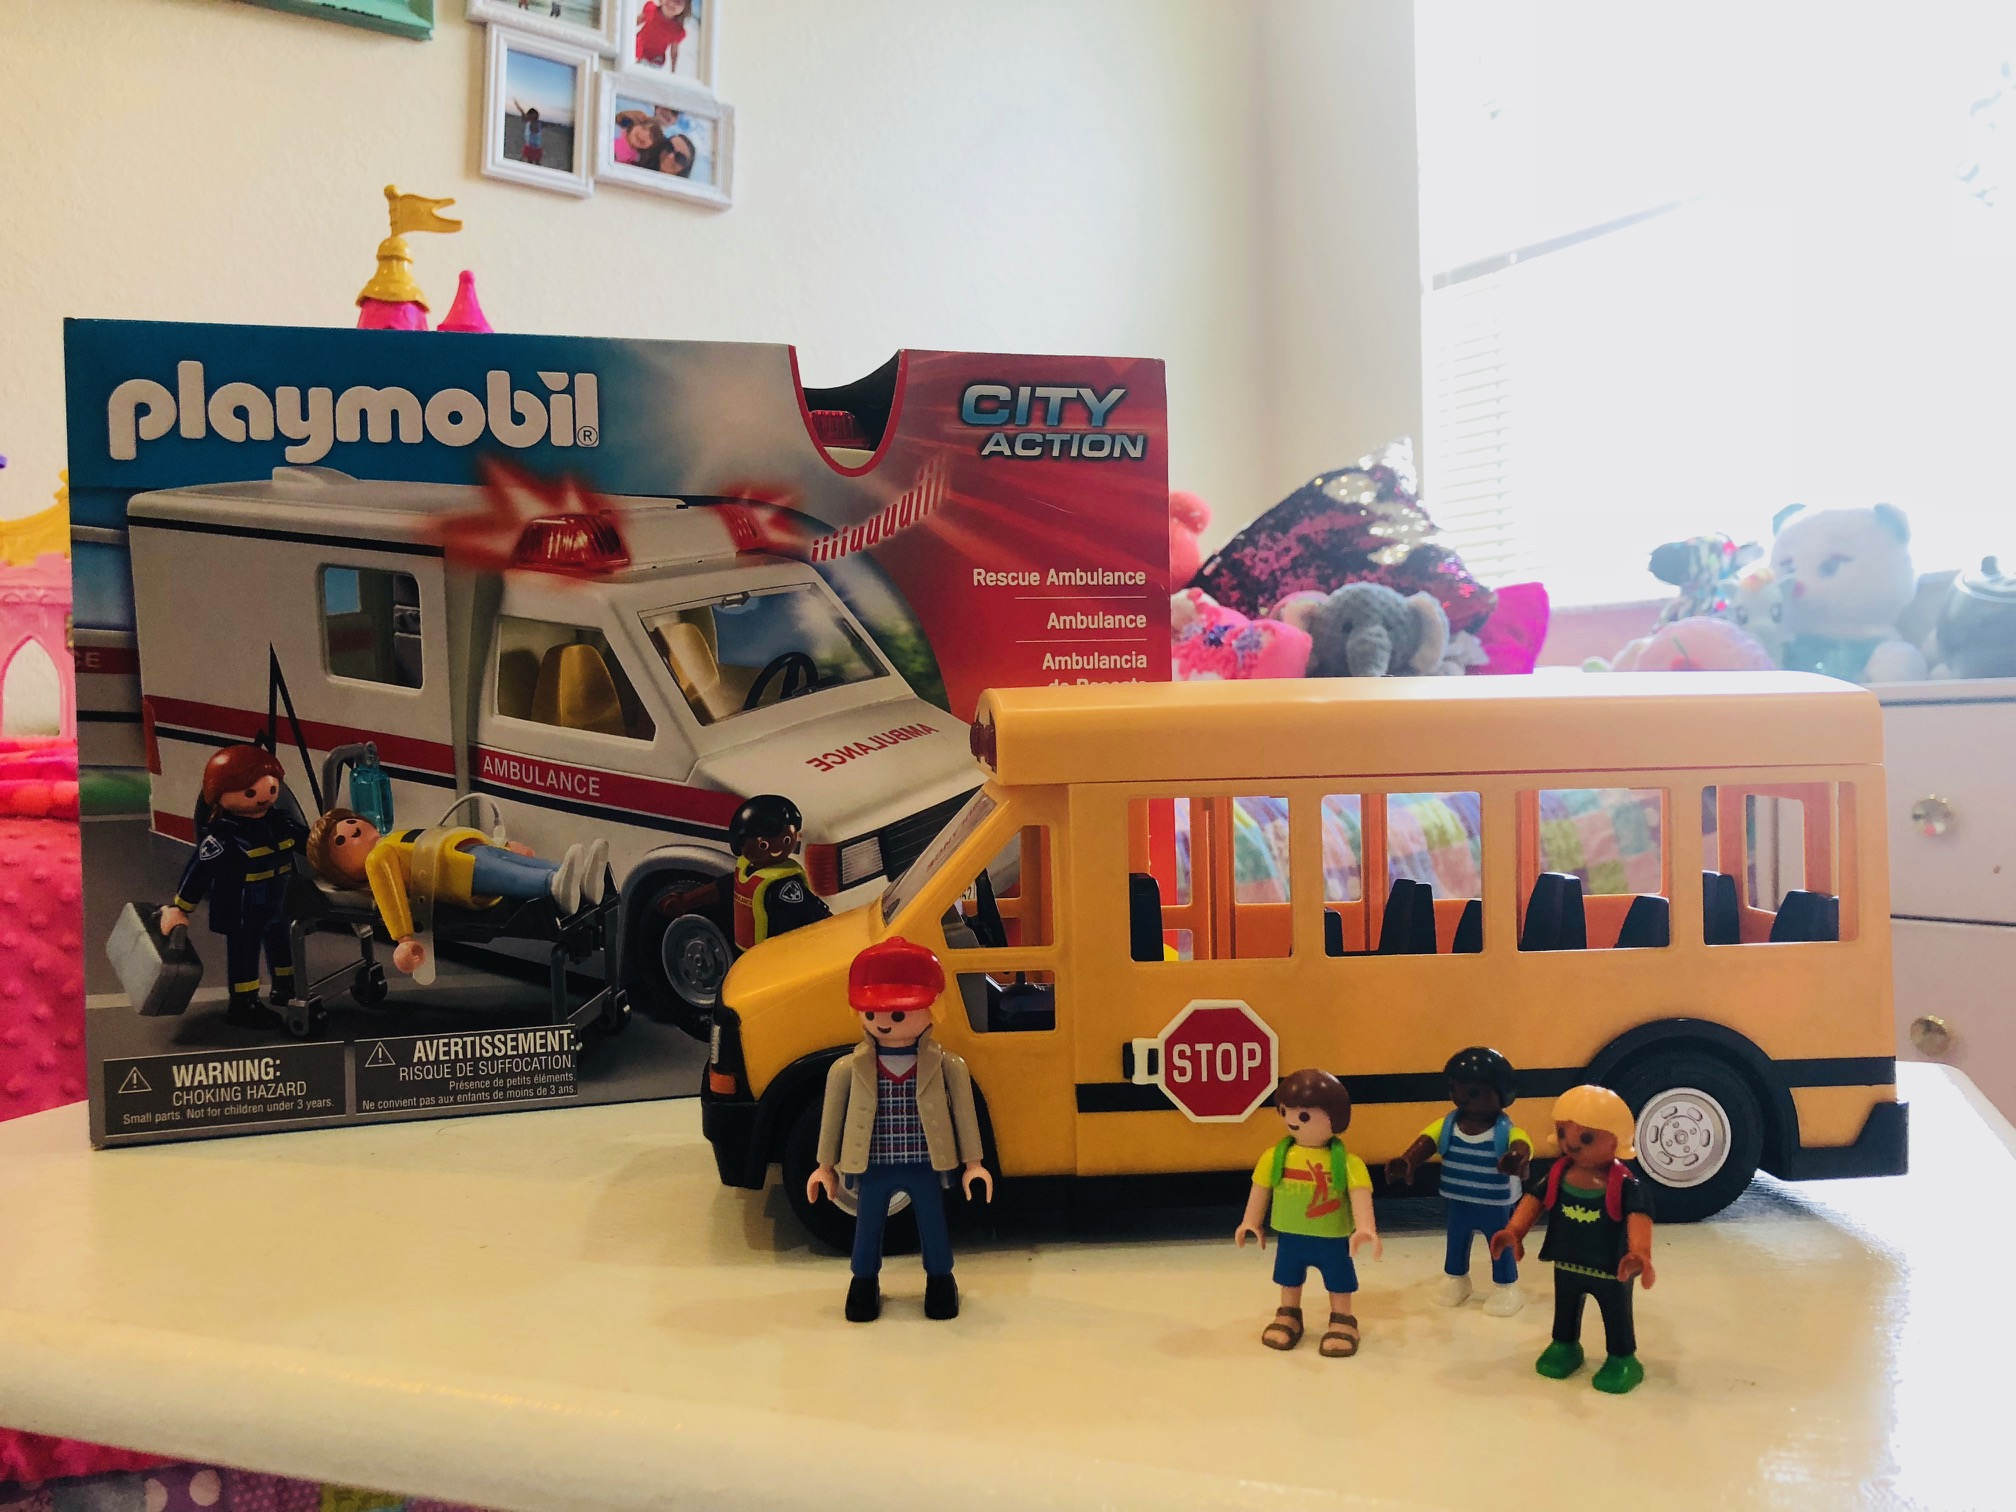 #PlayWithPlaymobil Imaginative play is part of learning | Mandy Carter